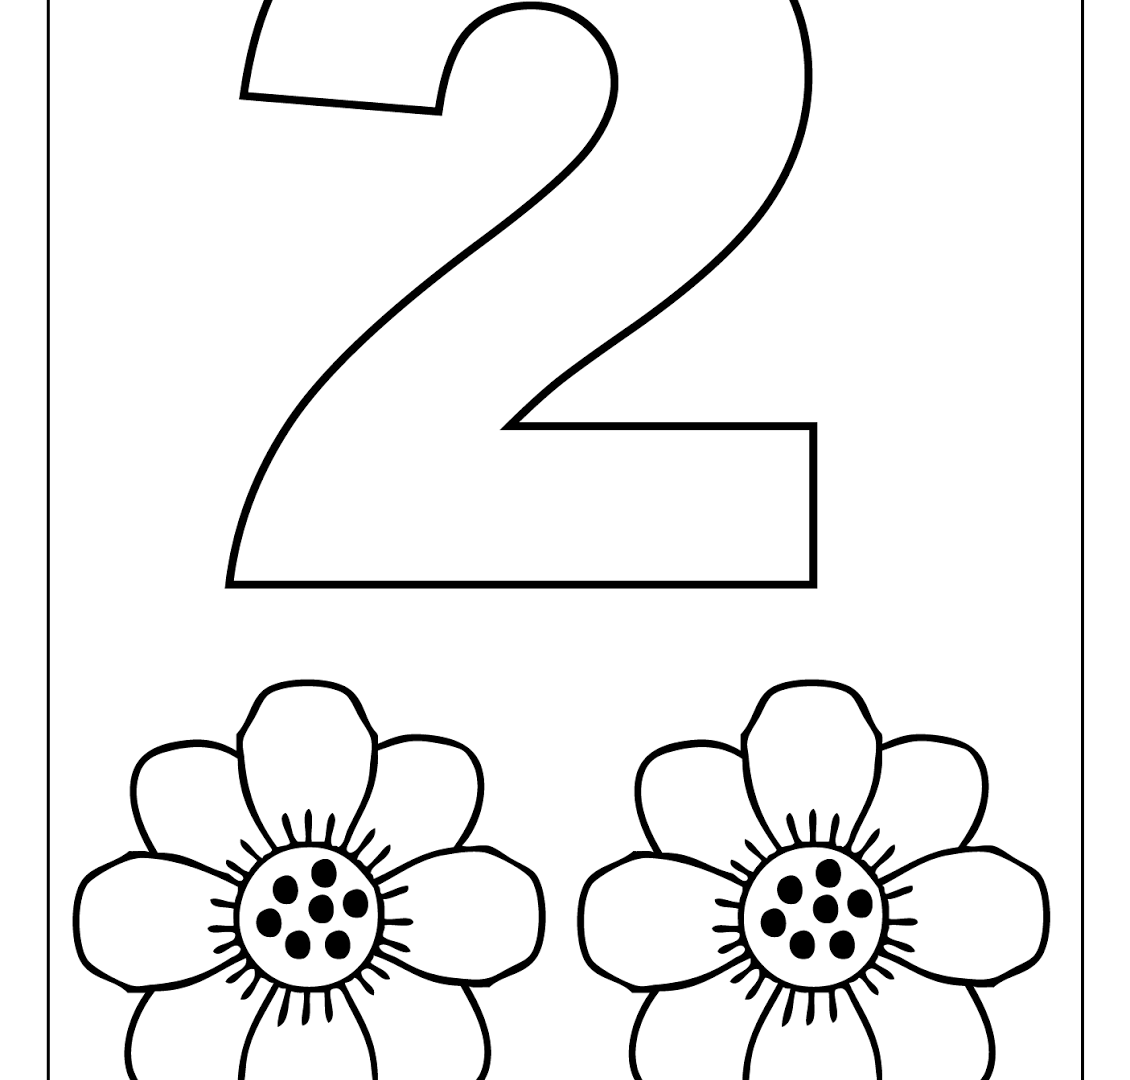 1130x1080 Luxury Free Printable Coloring Pages For Preschoolers Worksheets